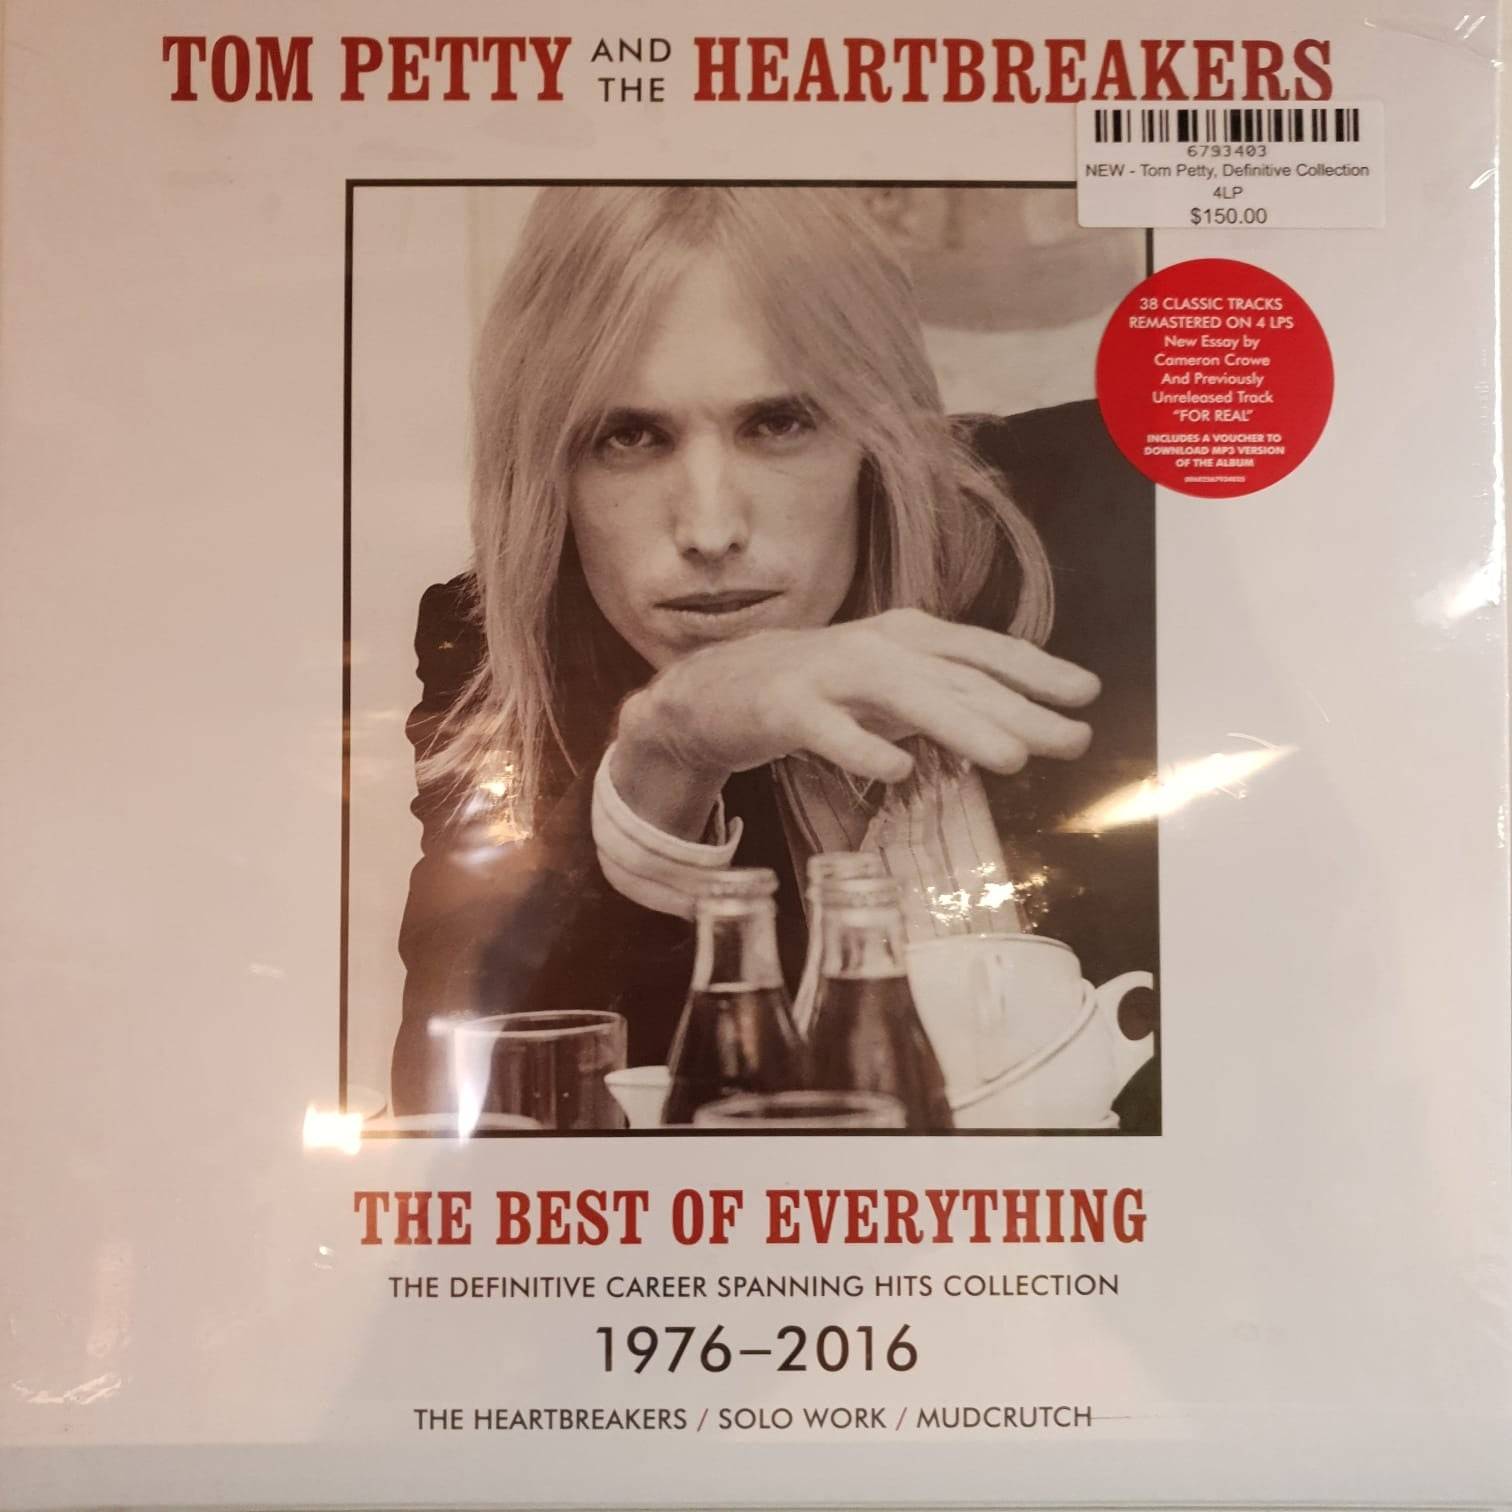 NEW - Tom Petty and the Heartbreakers, The  Definitive Collection 4 LP